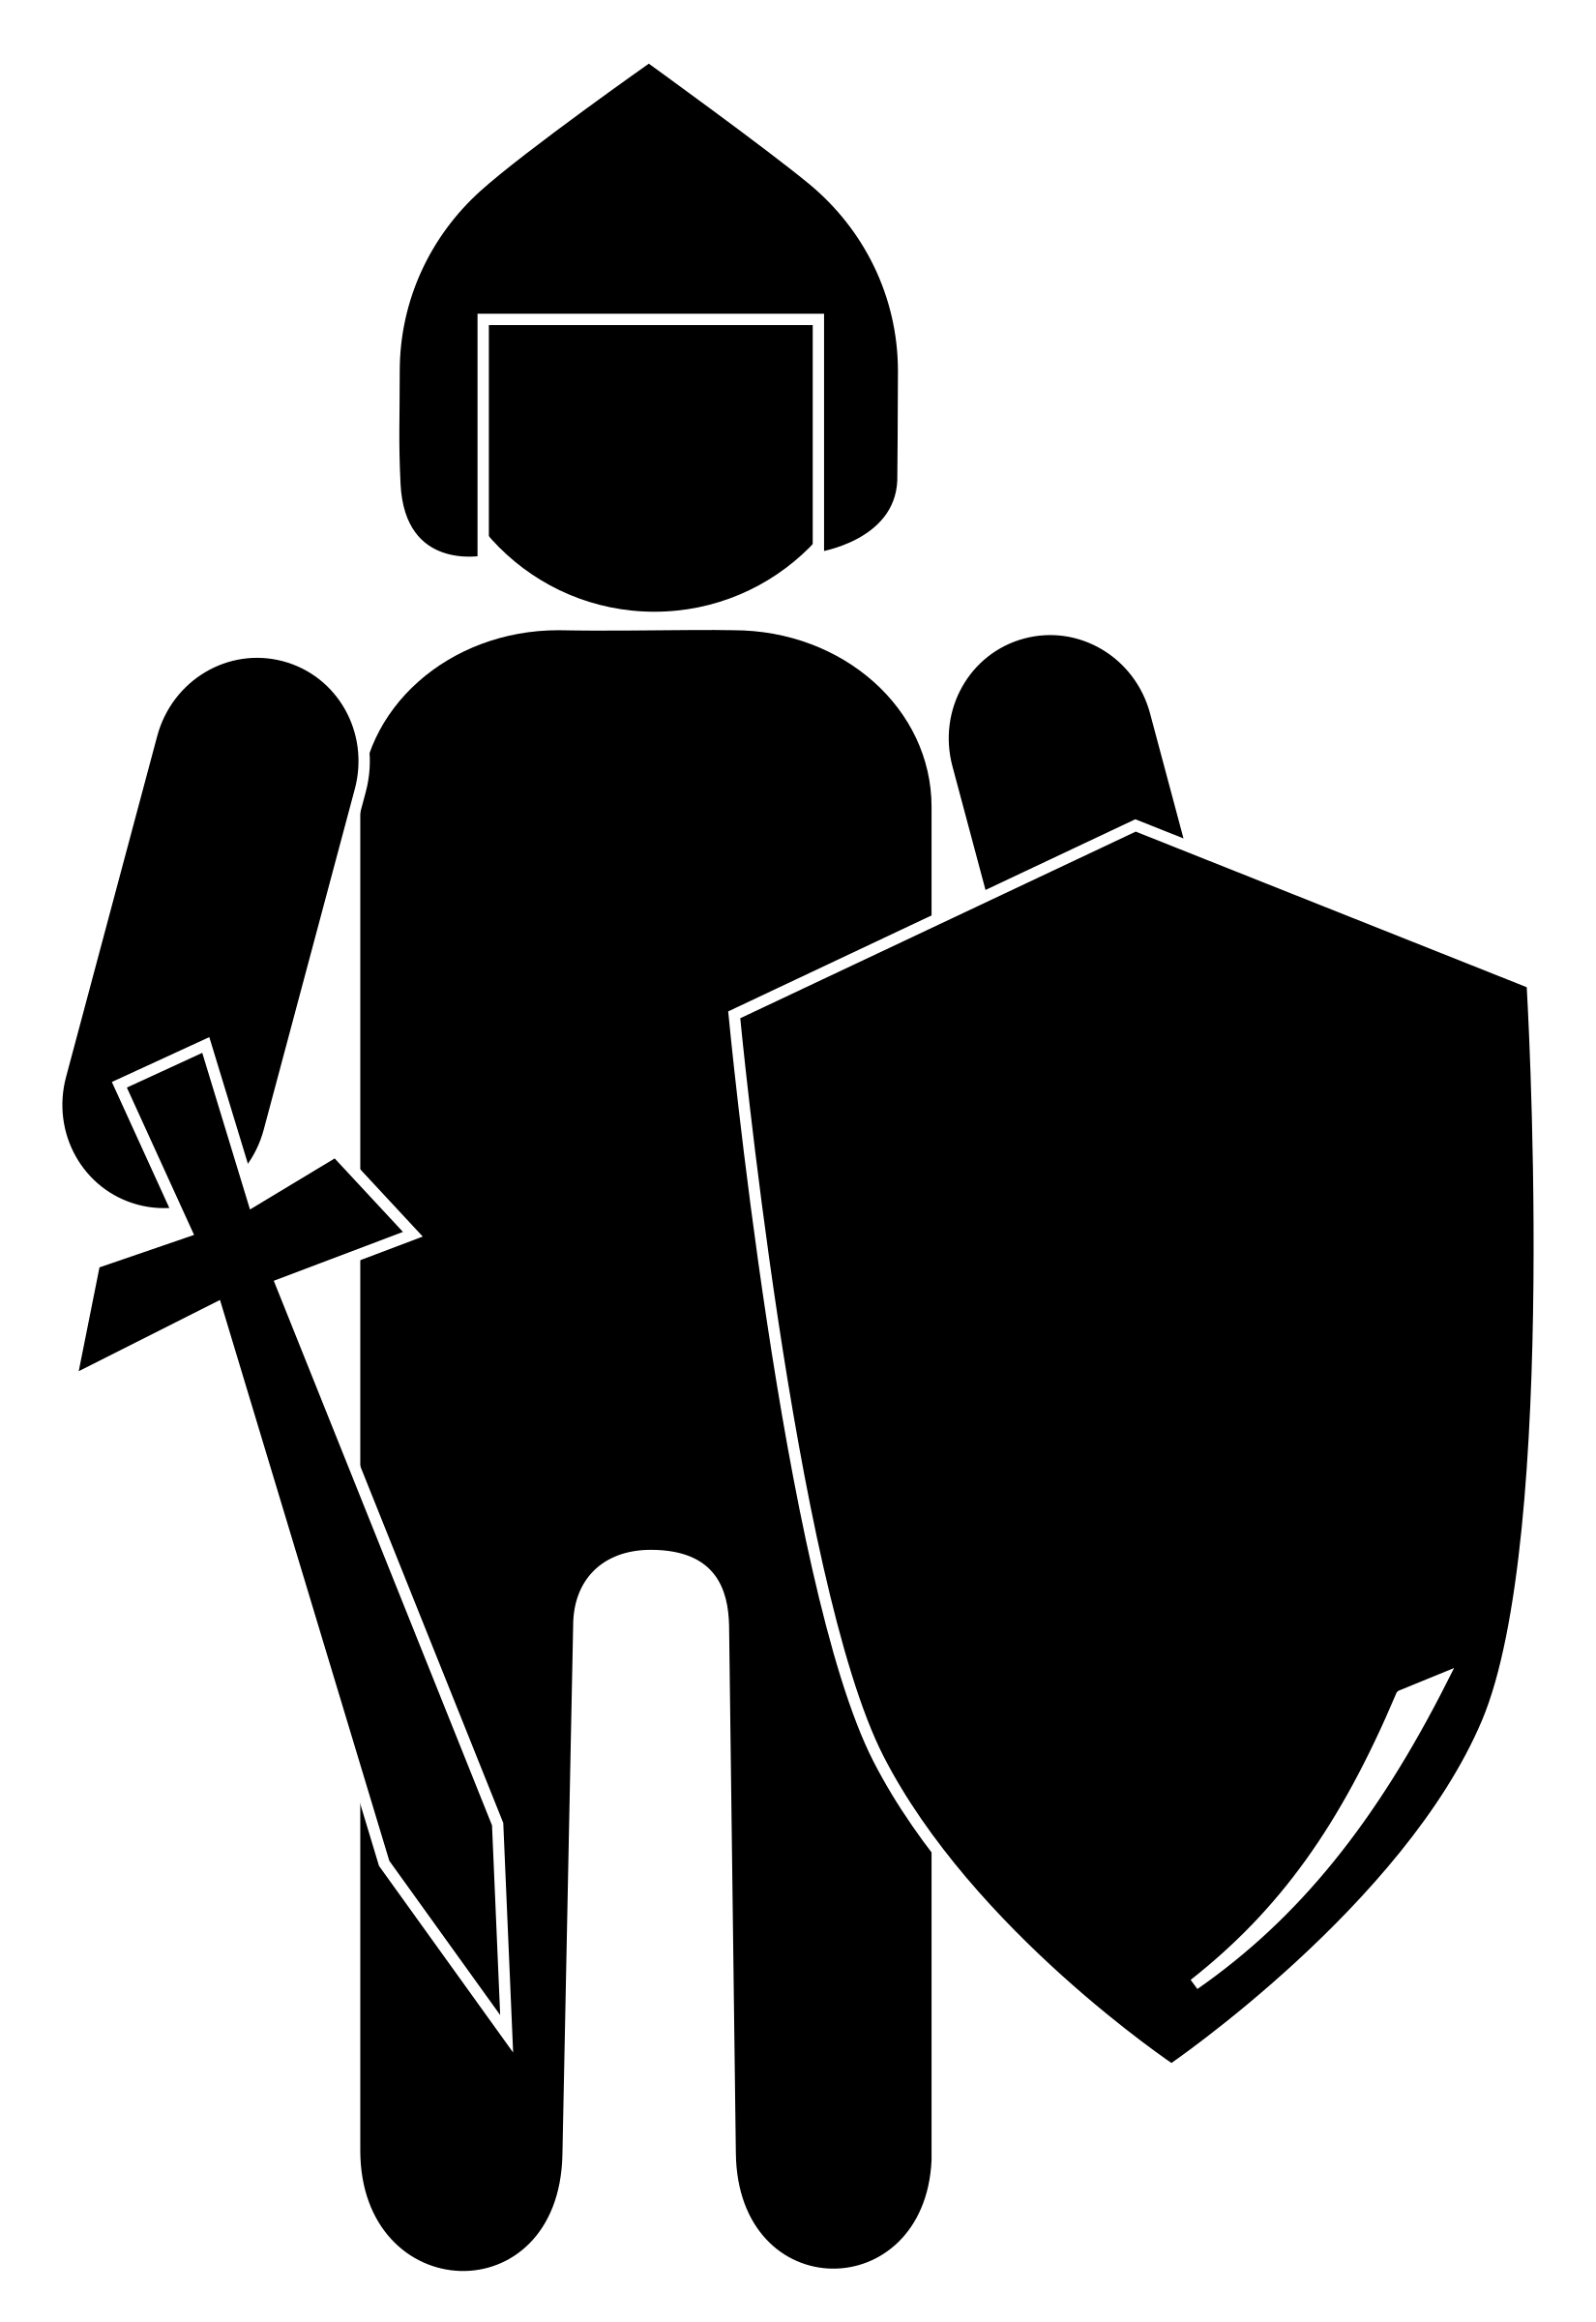 Free knight clipart the cliparts